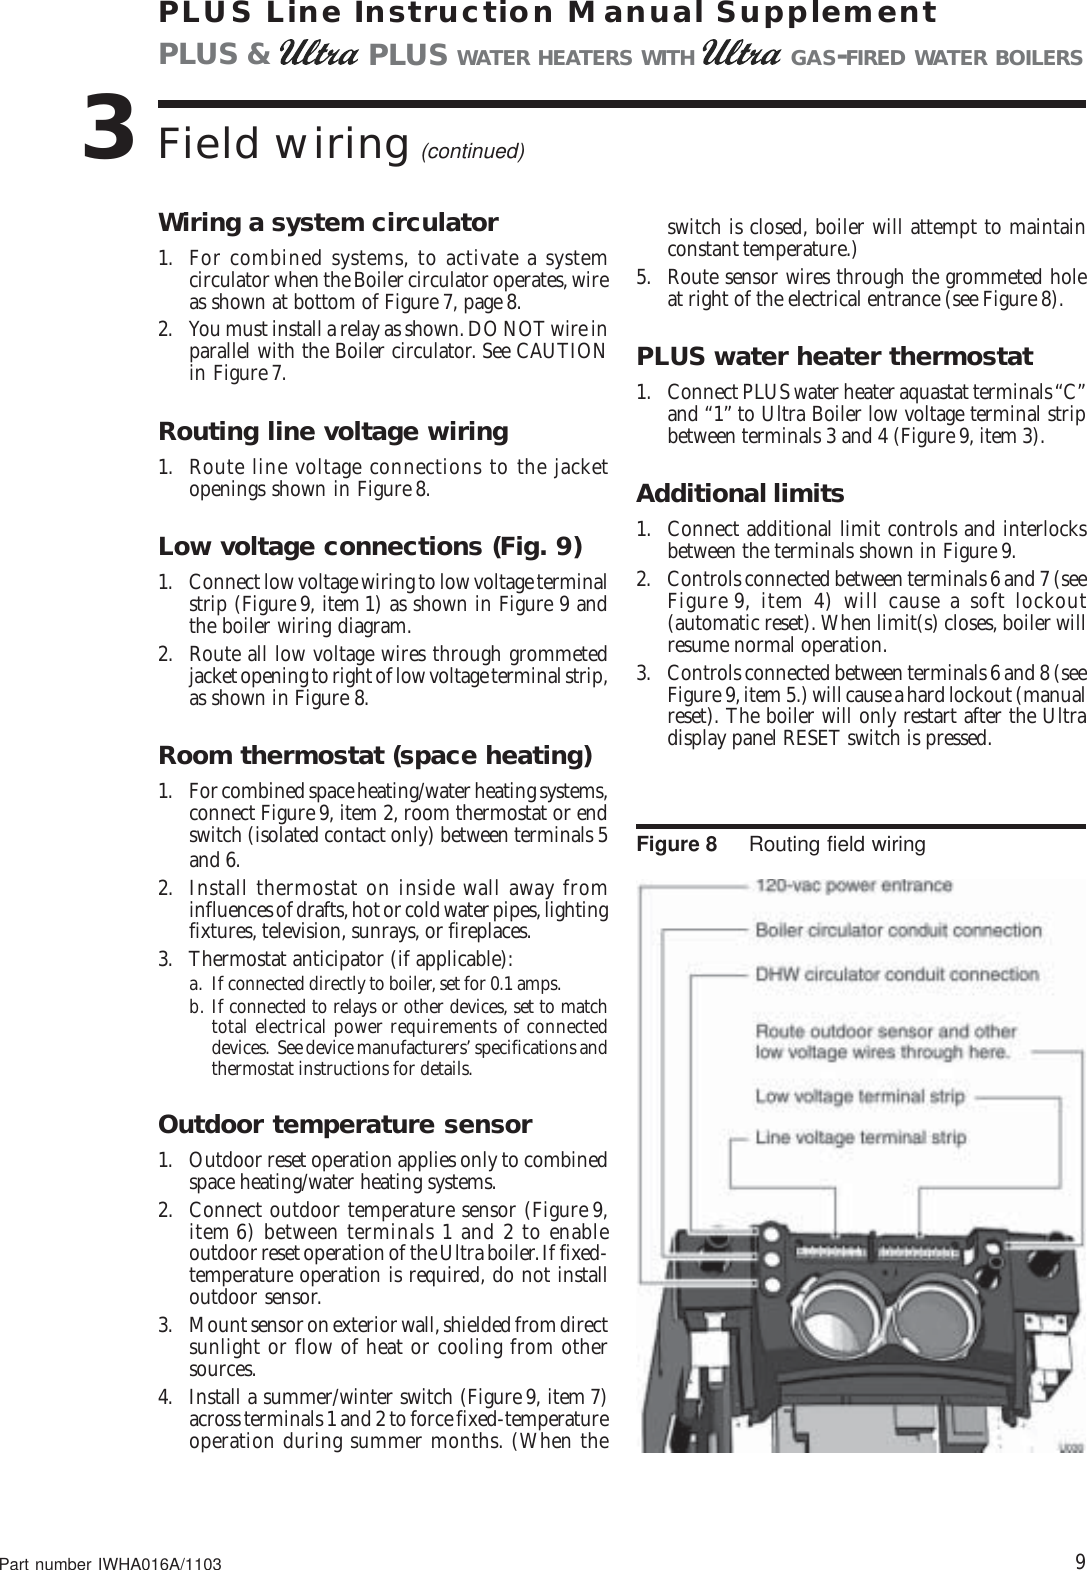 Weil Mclain Ultra Electric Water Heater Users Manual Iwha 110603 Boiler Wiring Diagram Page 9 Of 12